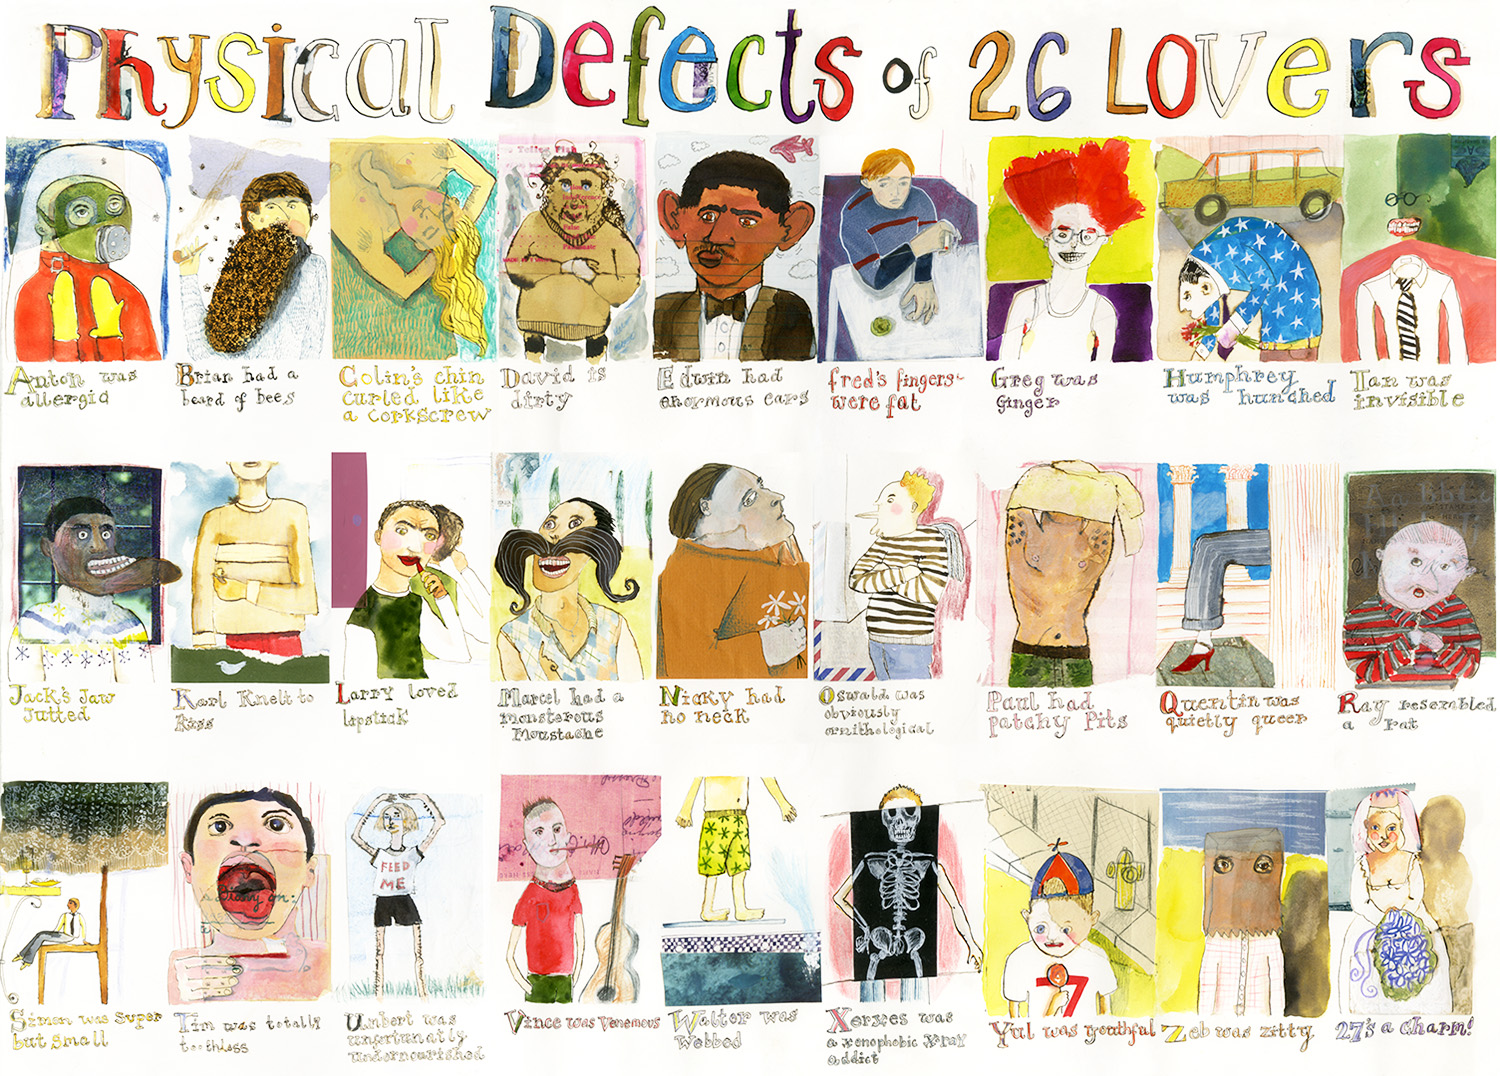 Physical Defects of 26 Lovers